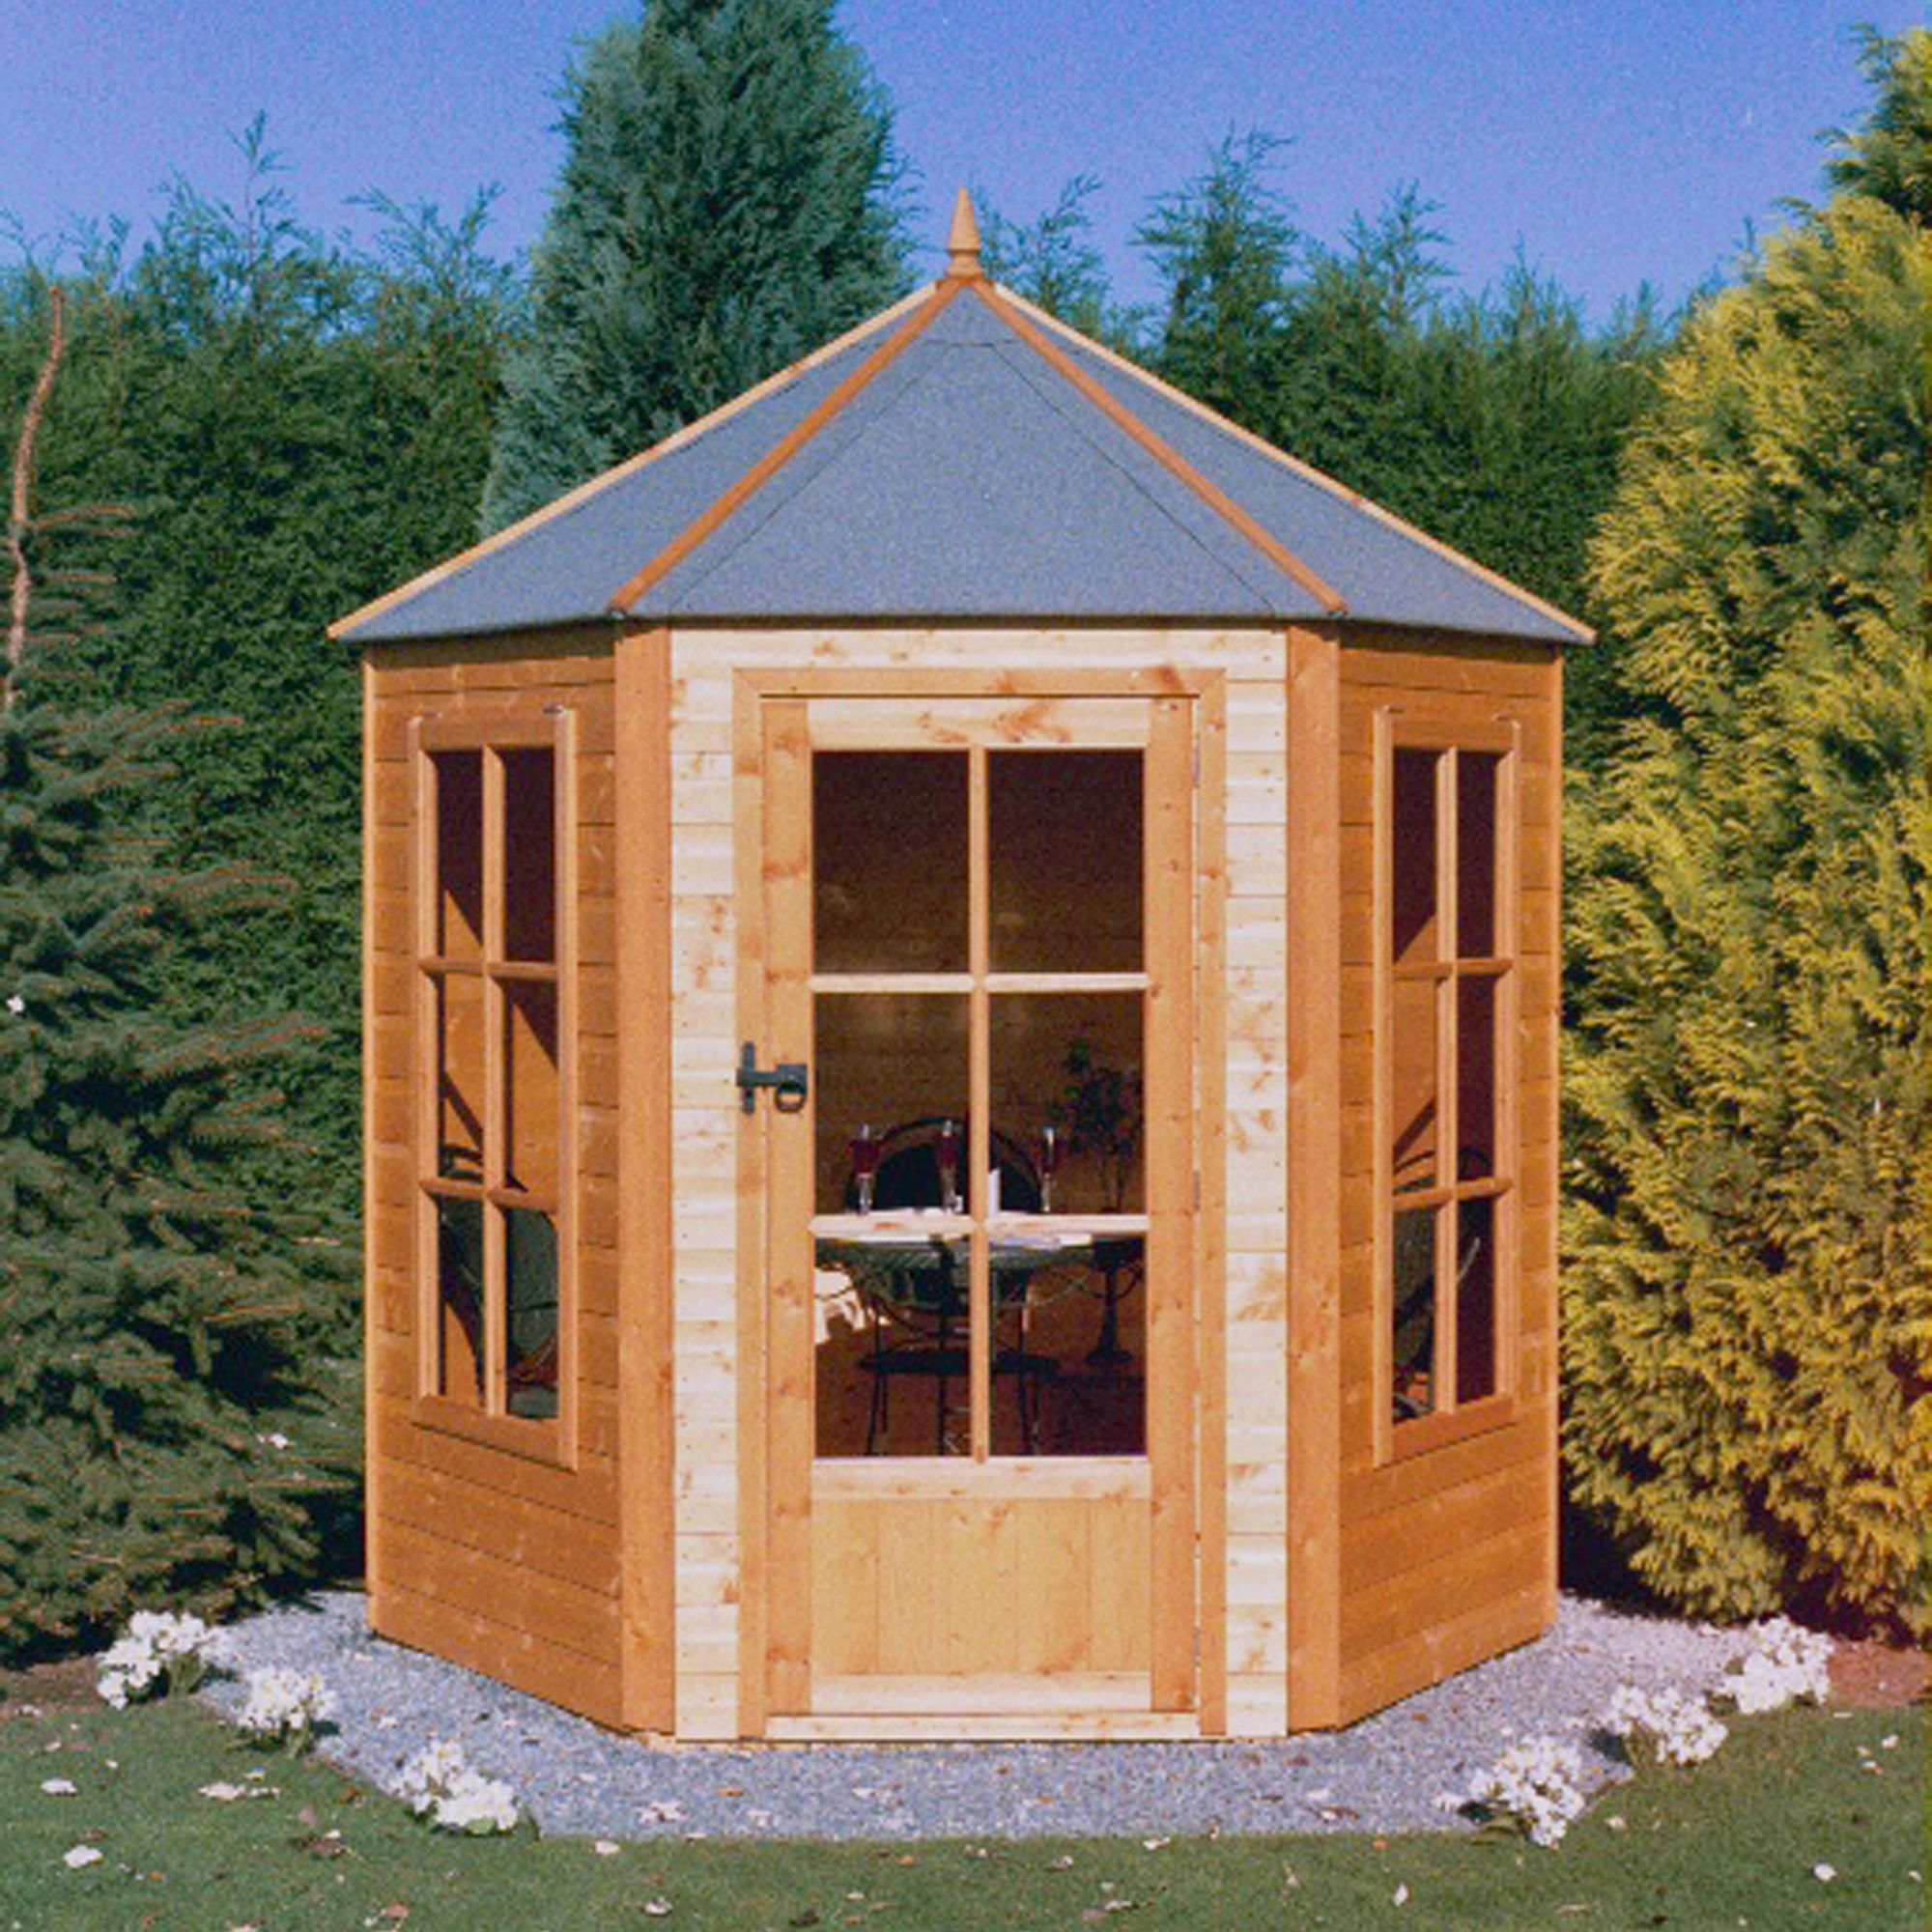 7x7 Gazebo Shiplap Timber Summerhouse With Assembly